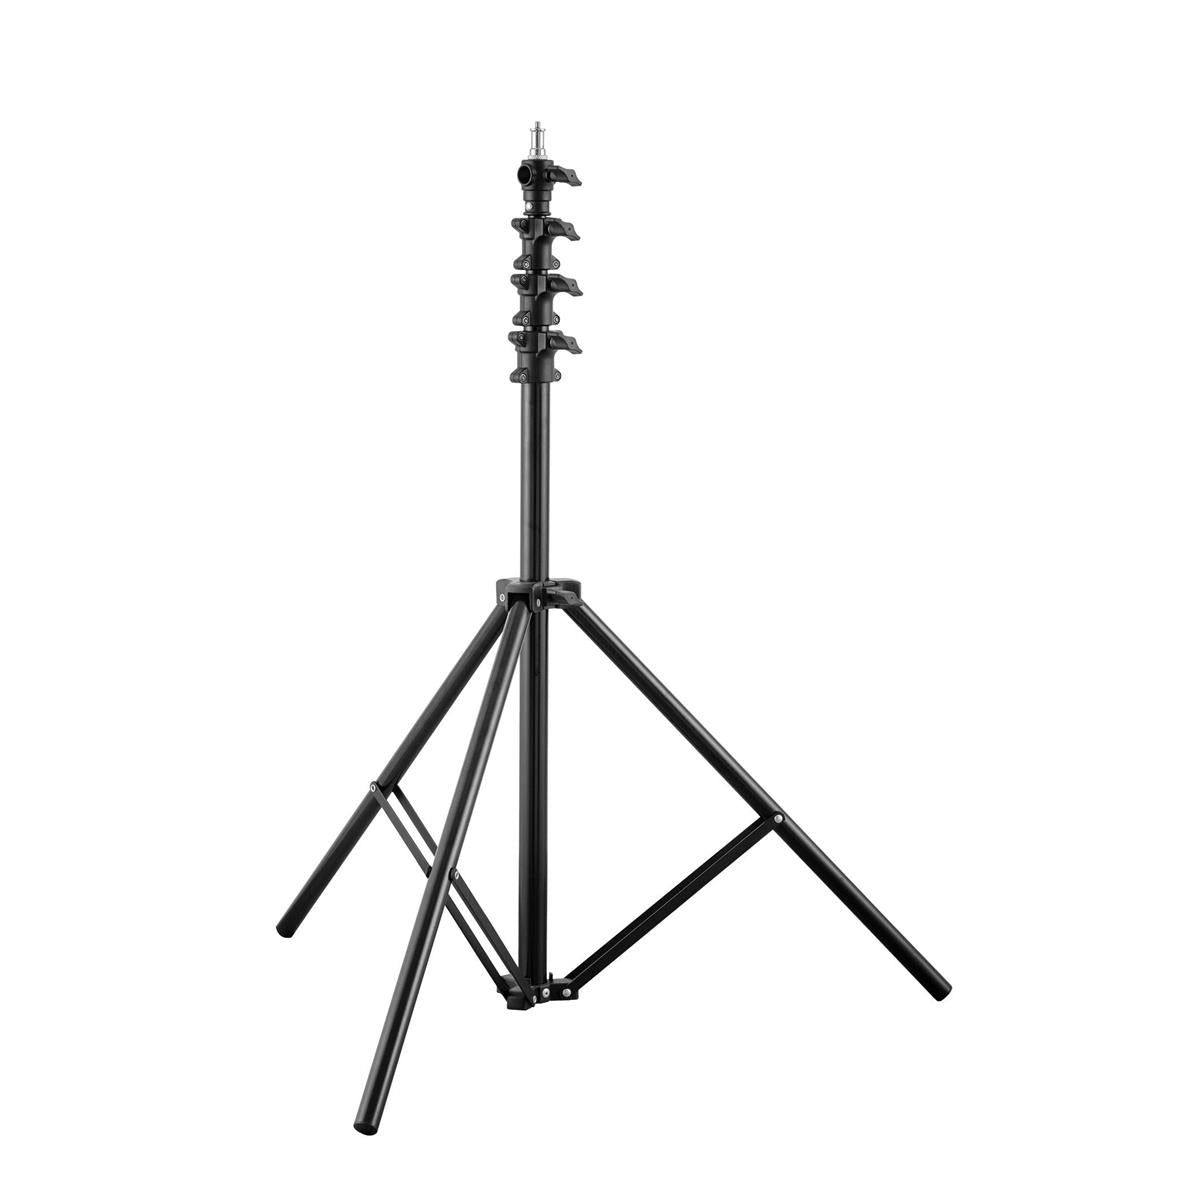 Studio Light Stand Air-cushion 8' /240cm